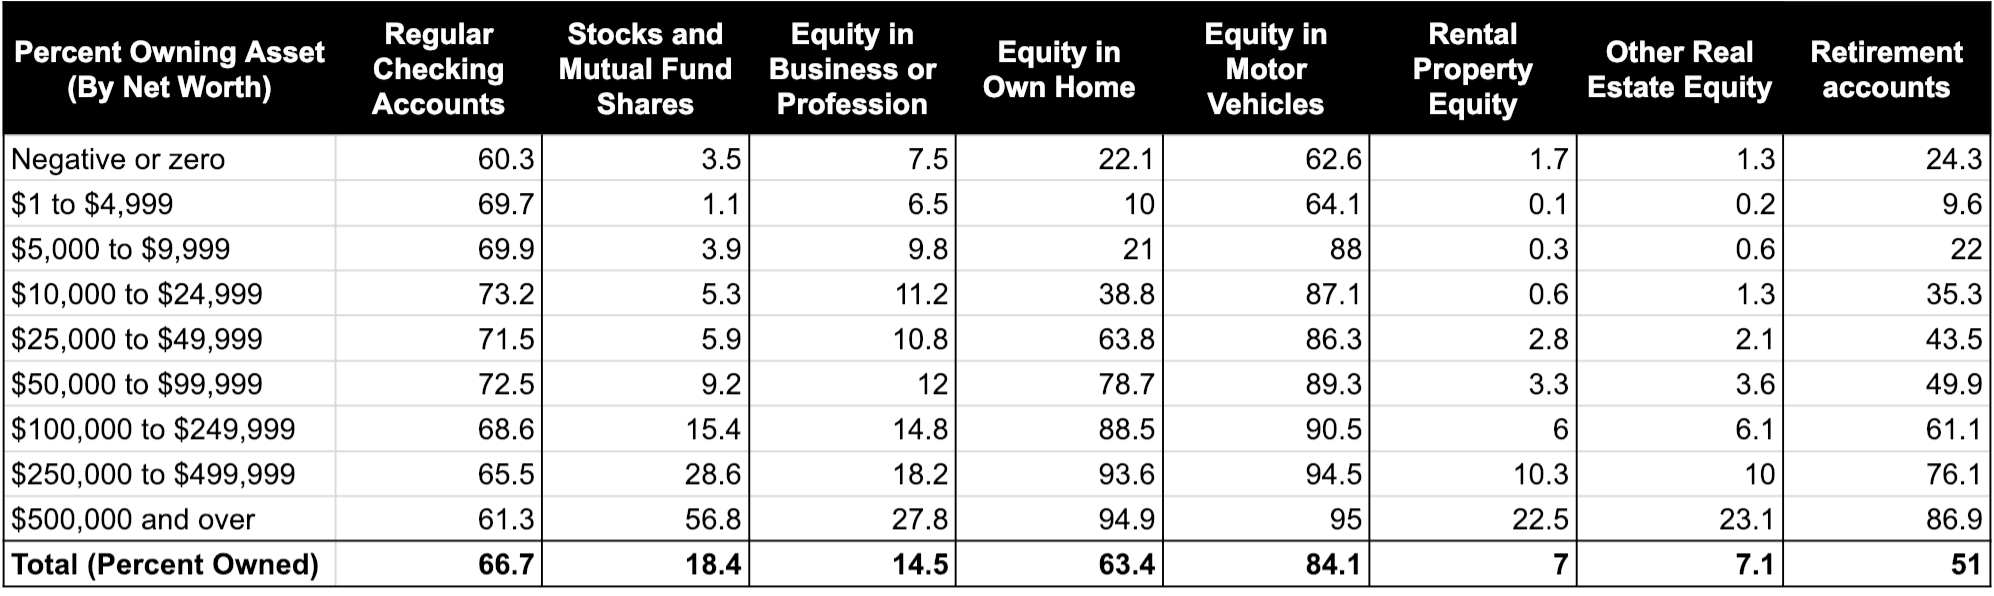 percent of households owning each asset